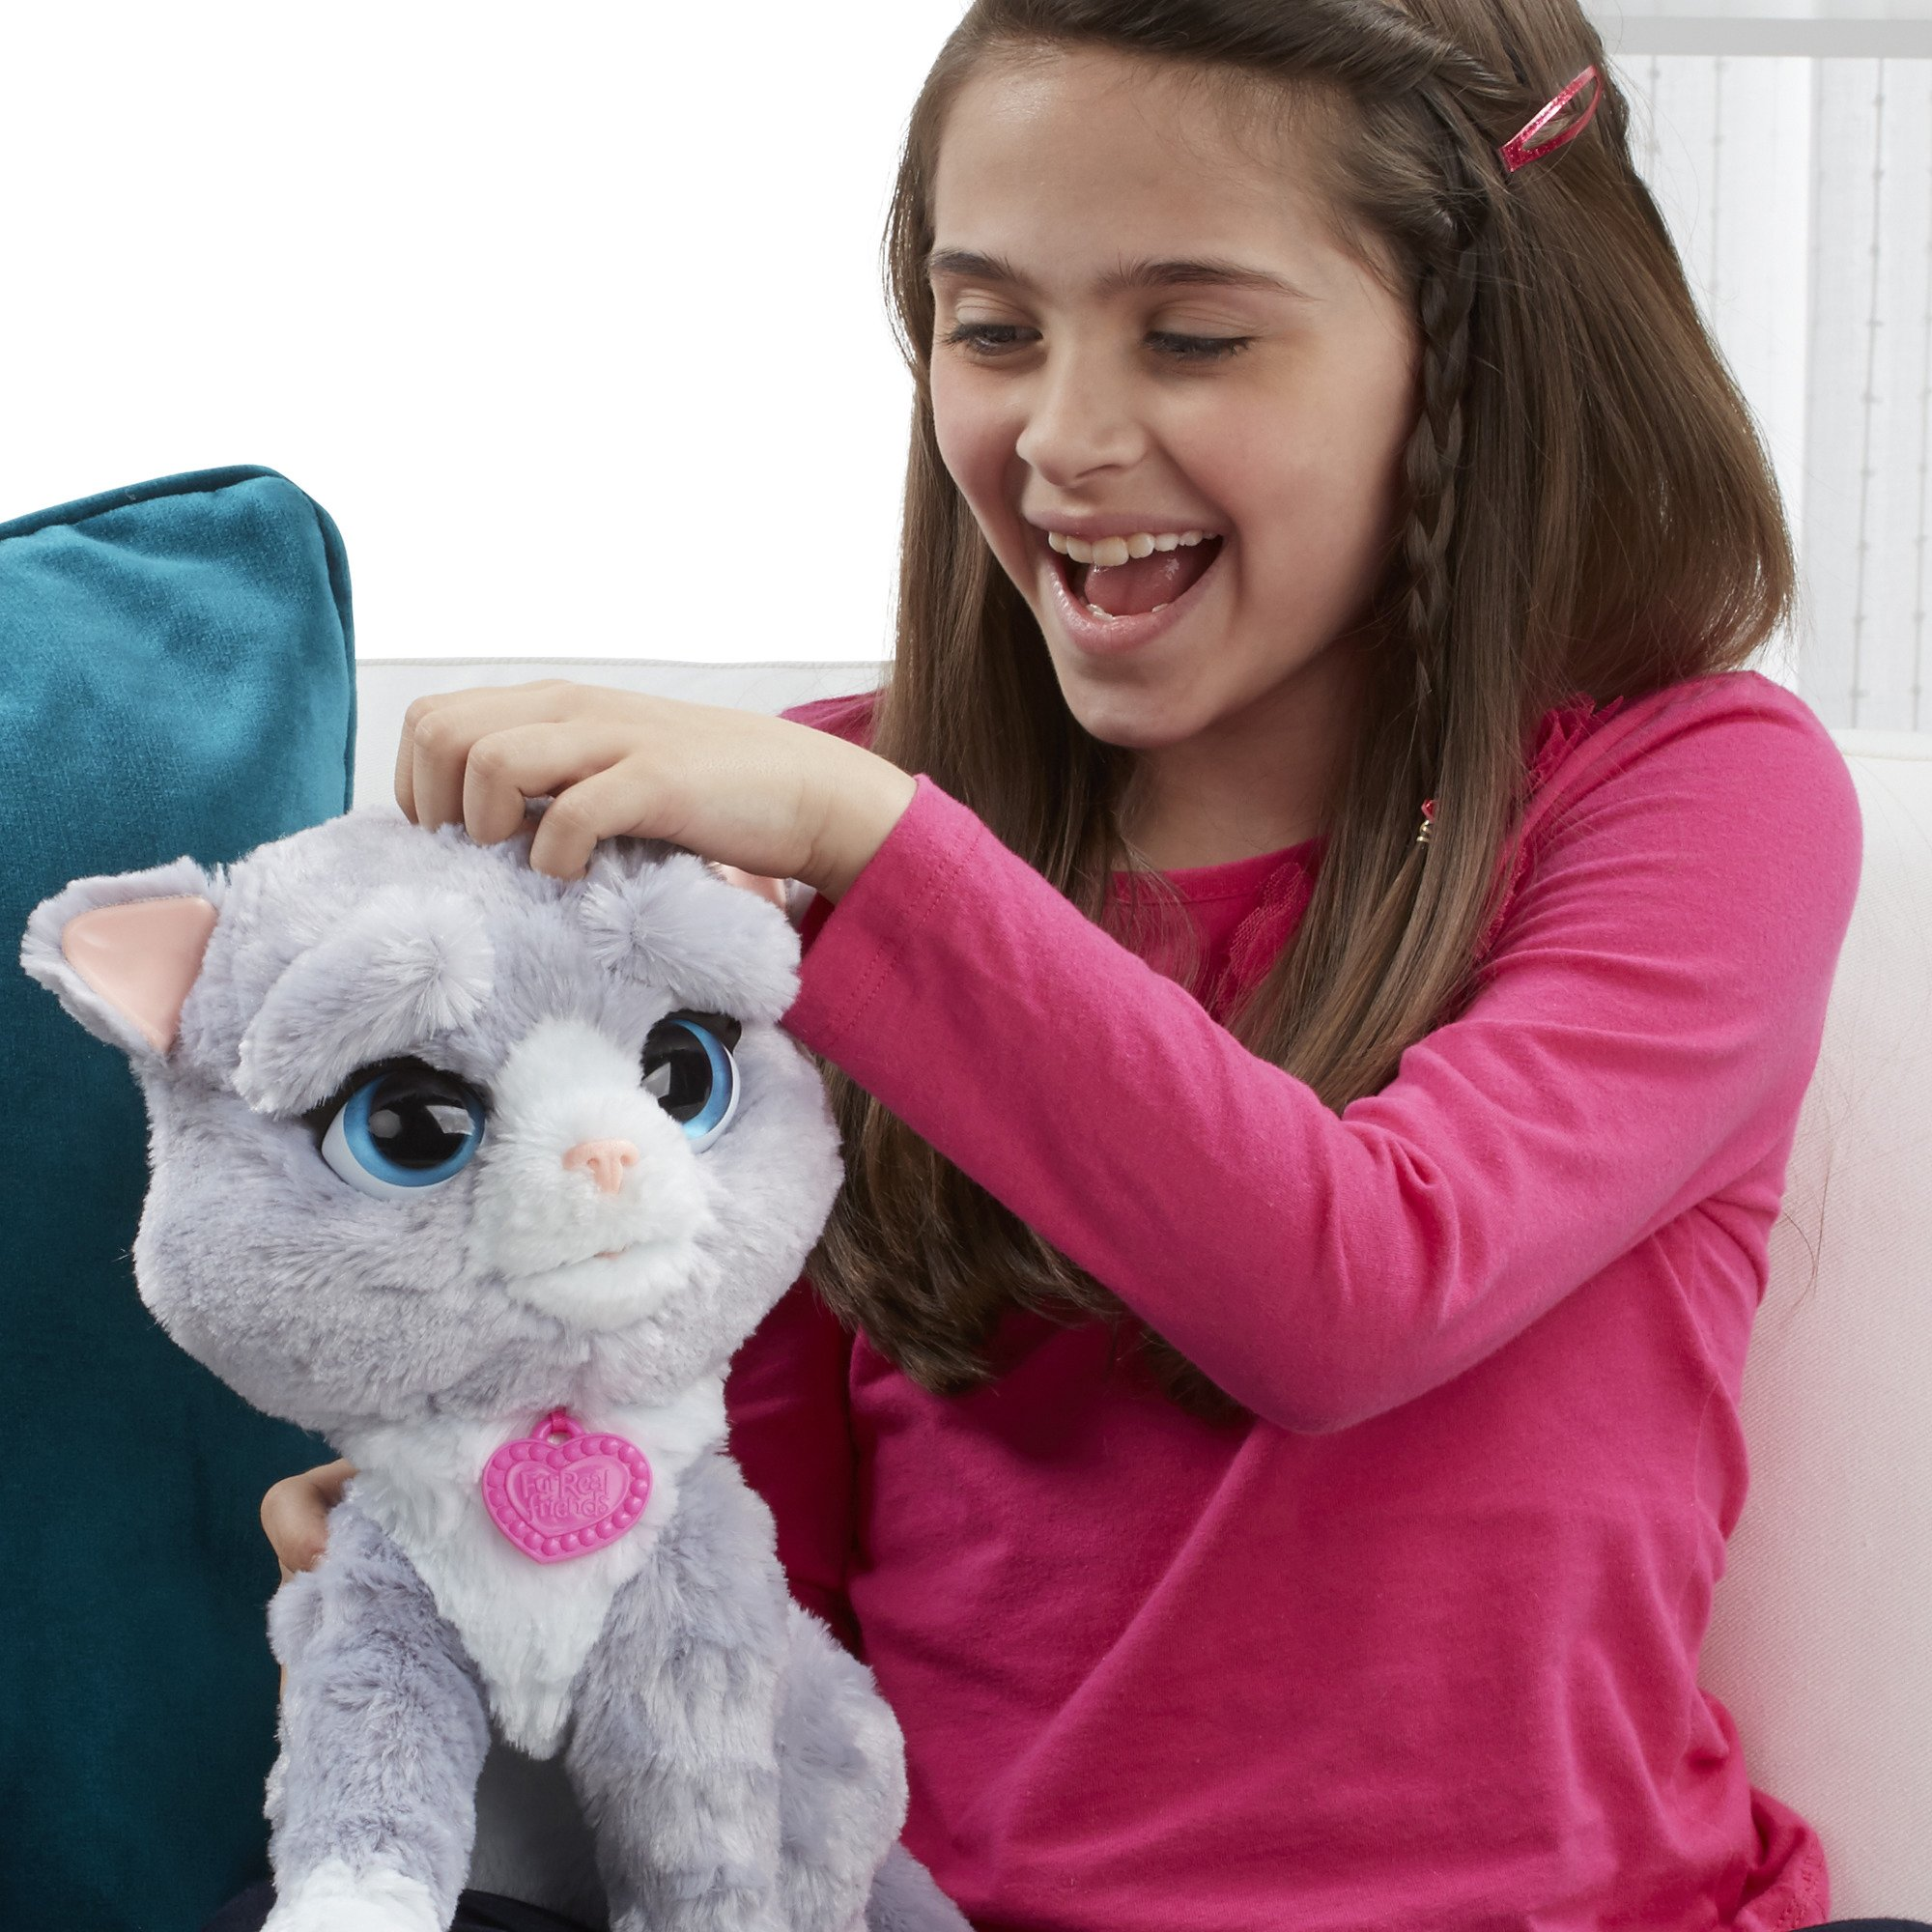 FurReal B5936AF1 Bootsie Interactive Plush Kitty Toy, Ages 4 & Up by FurReal (Image #8)